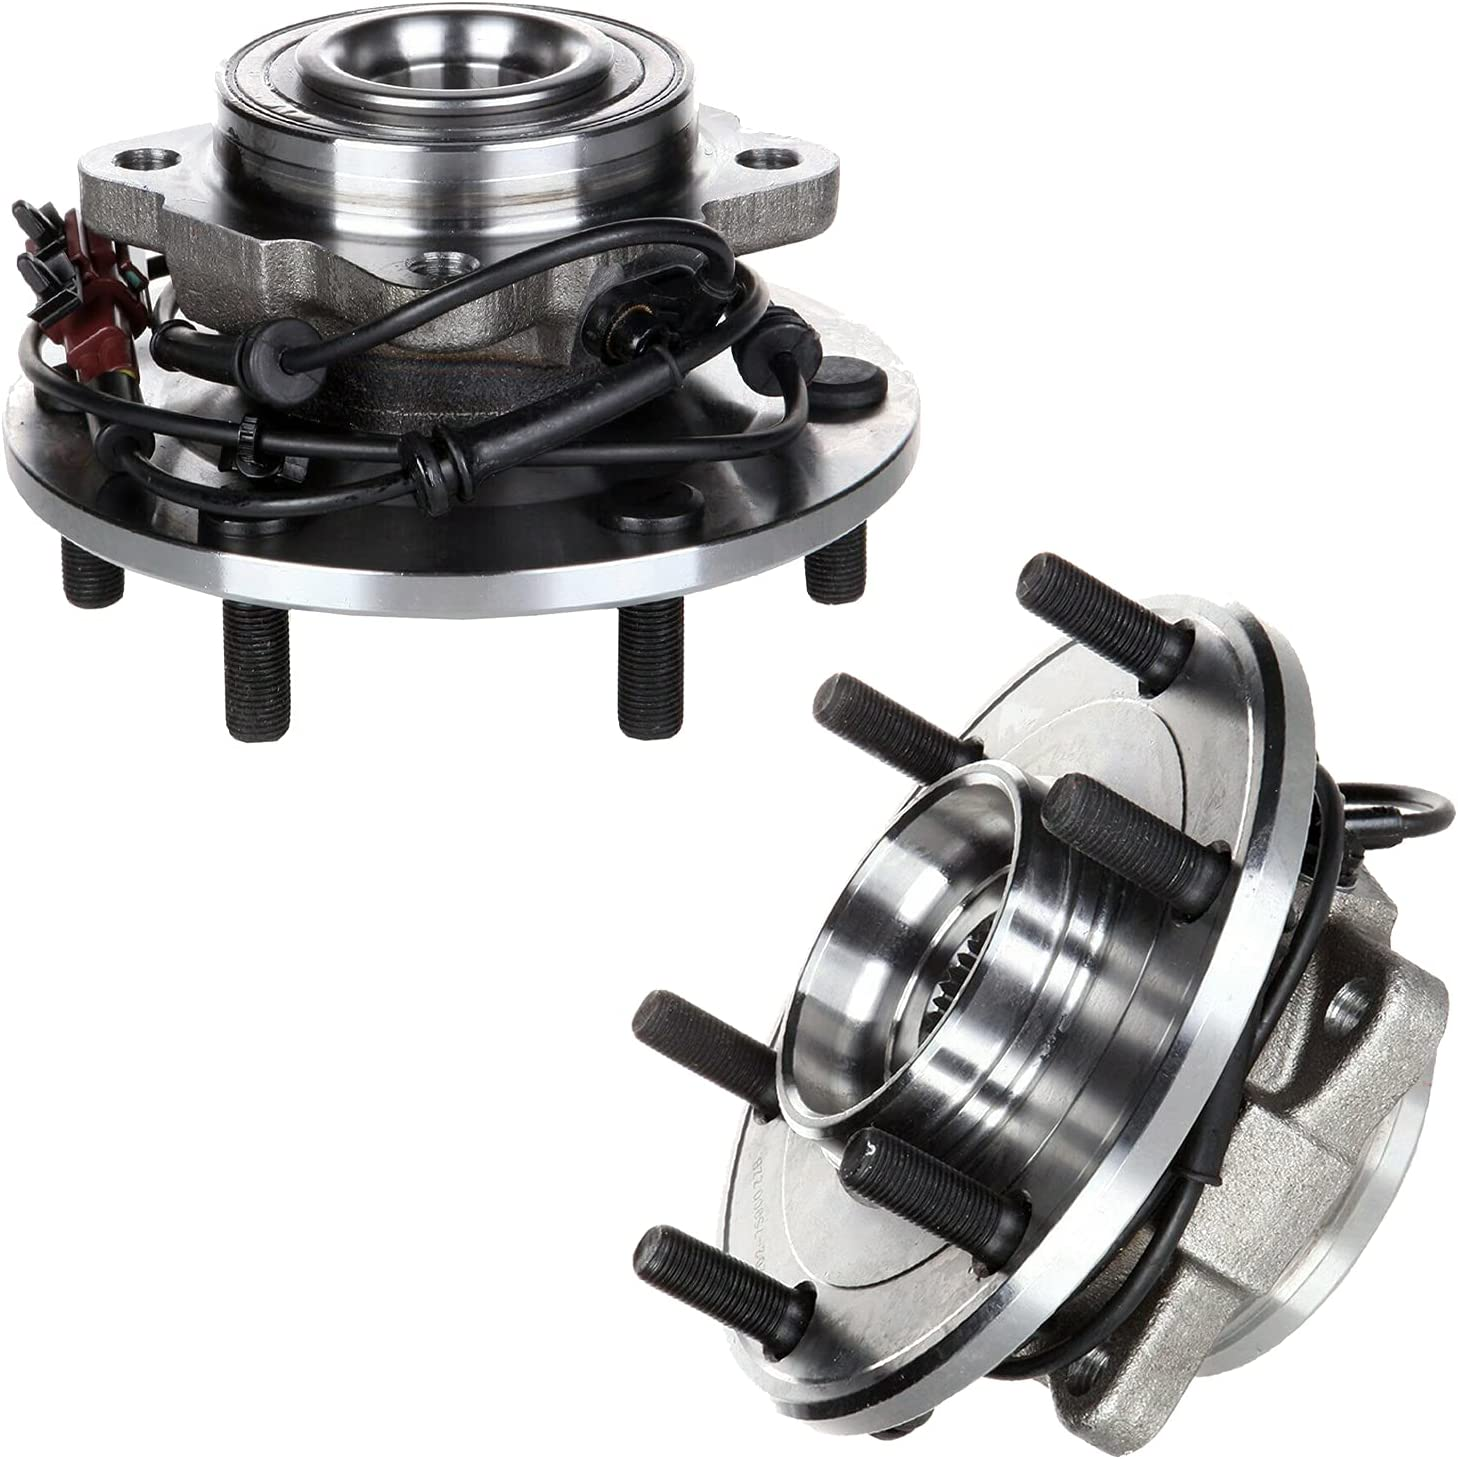 Detroit Axle - Rear Wheel for Cash special price Hub Assembly Replacement Bearing 5 popular